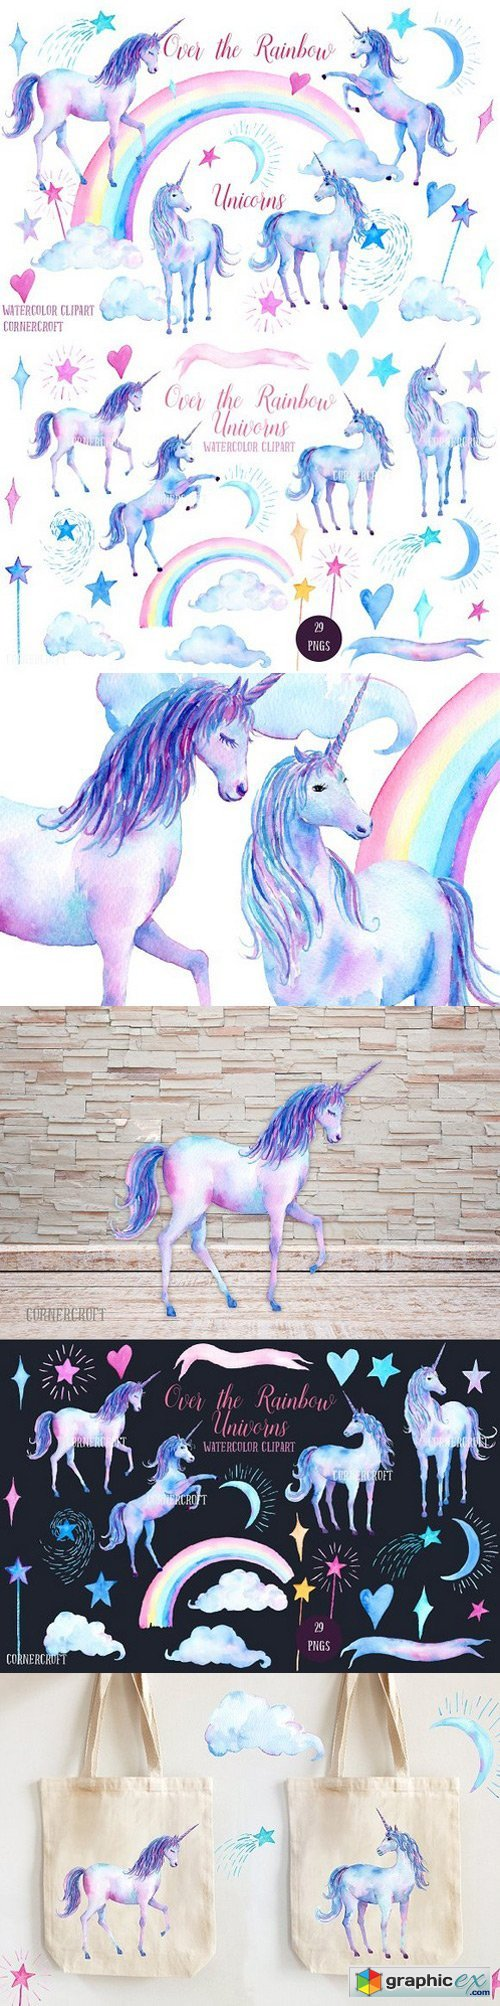 Watercolor Clipart Unicorns